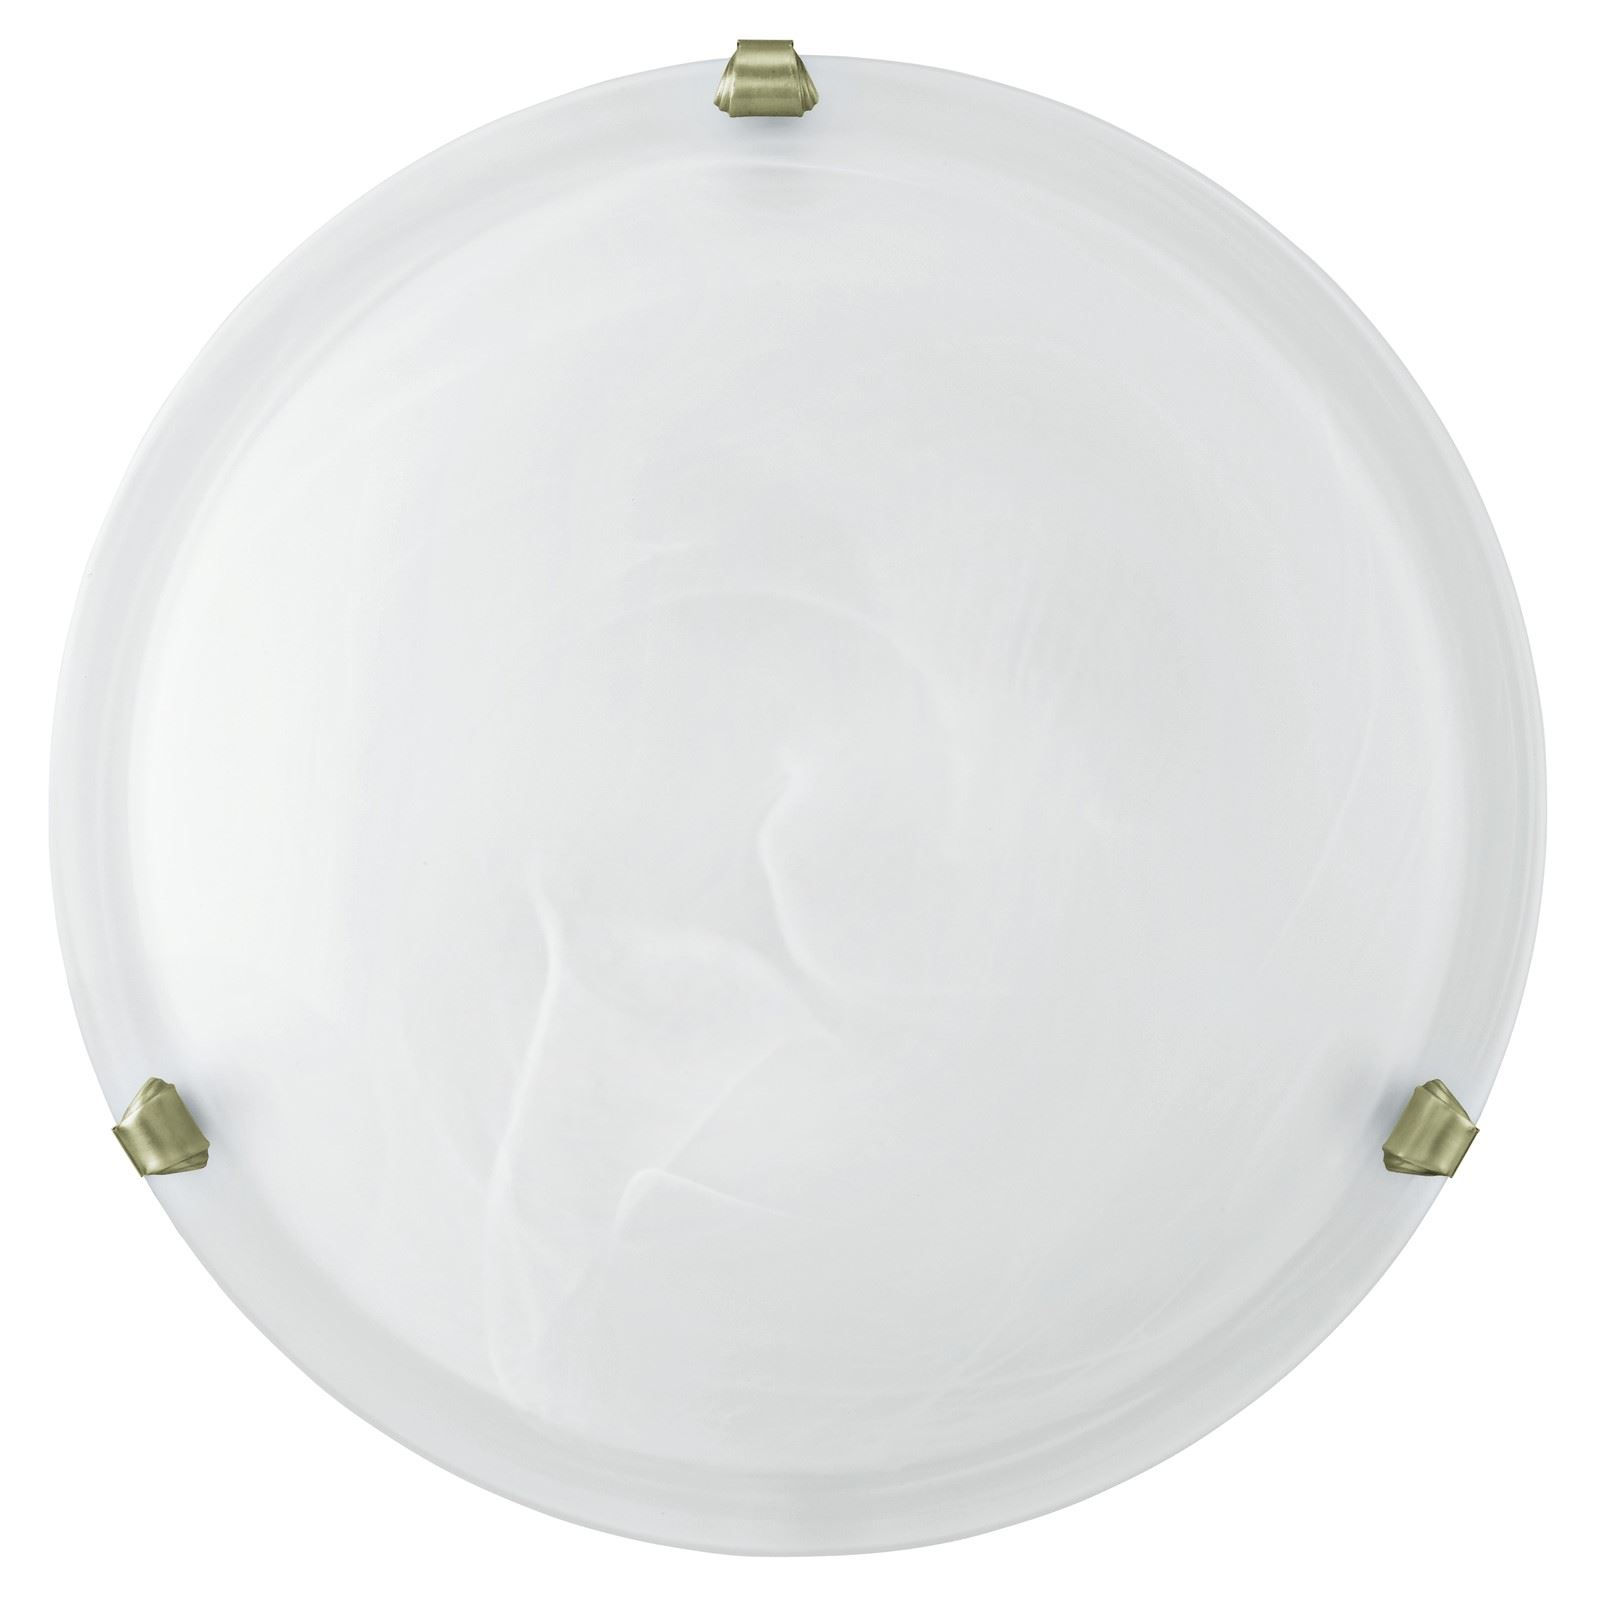 Salome White Glass Wall Ceiling Light With Steel Bronzed Clips